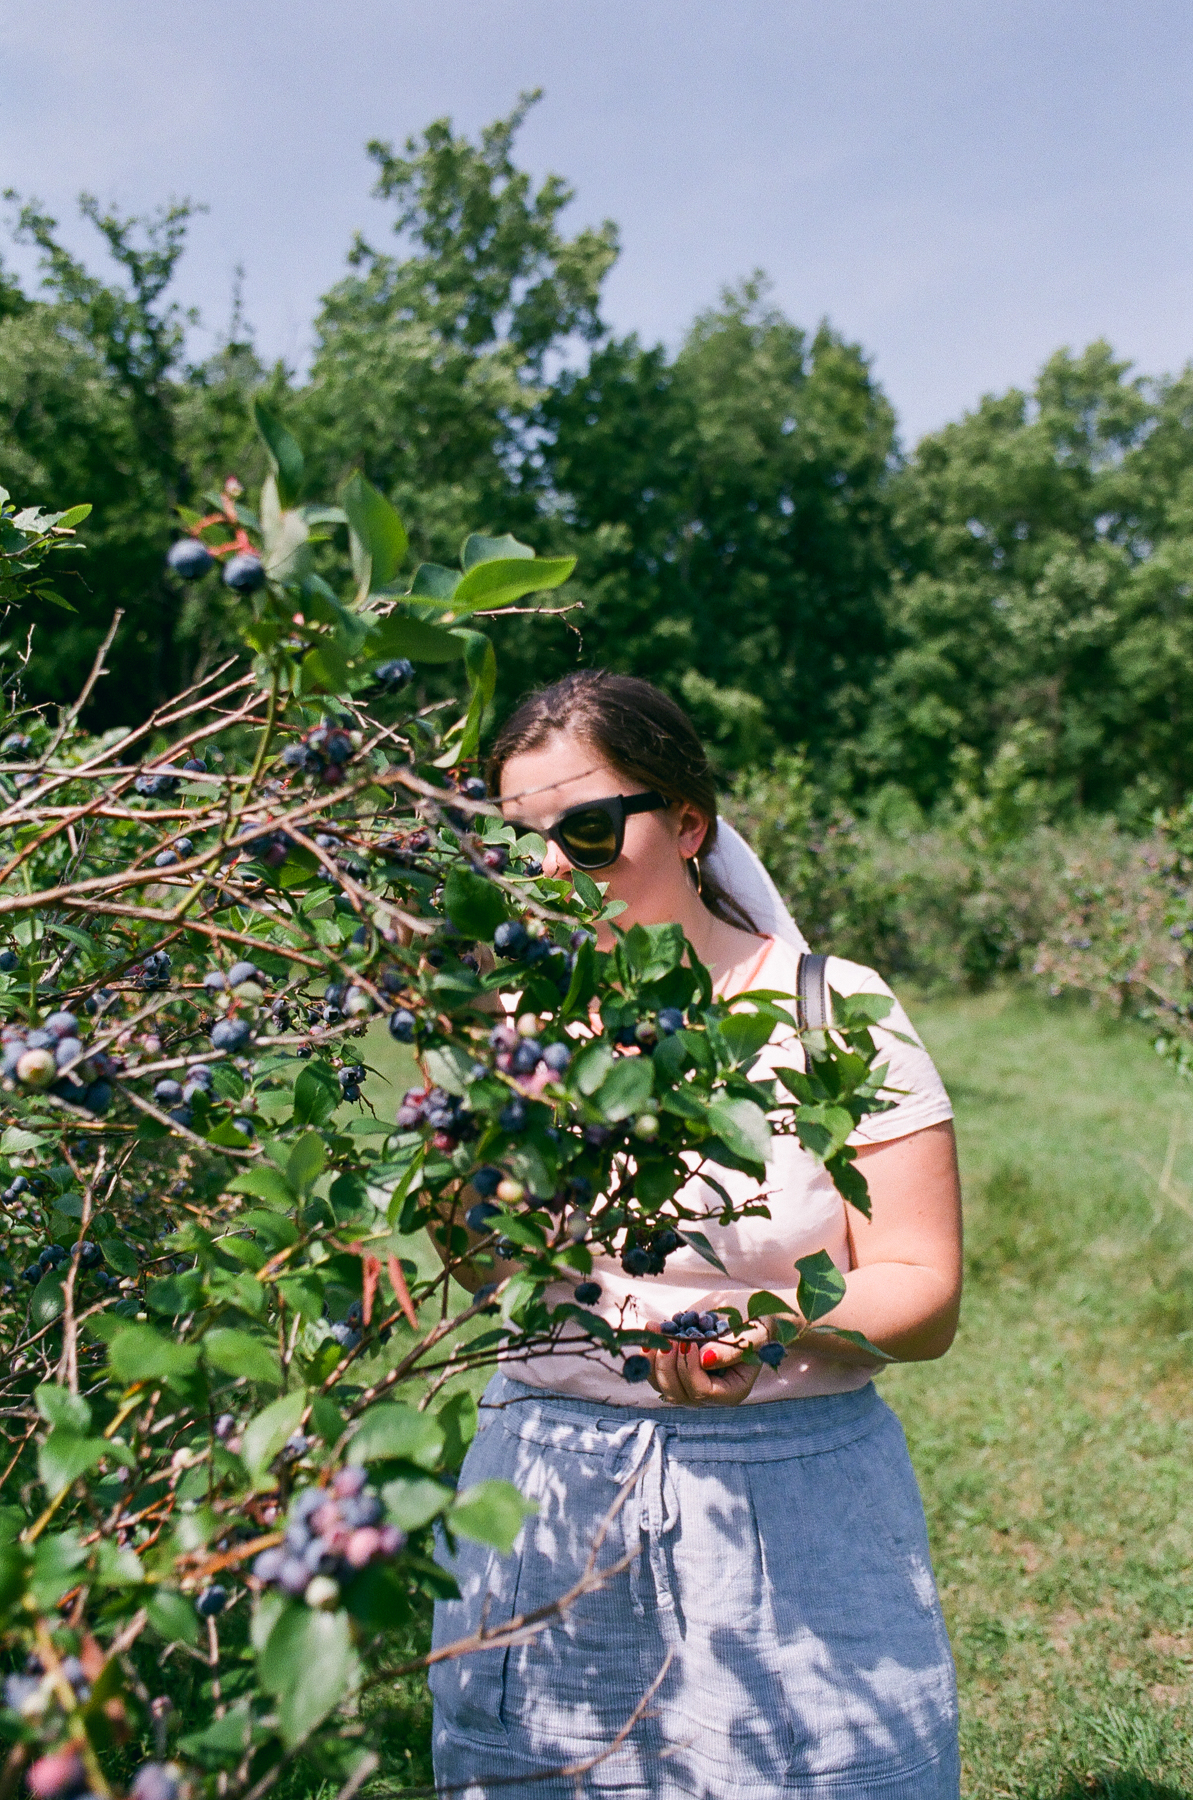 Picking blueberries outside